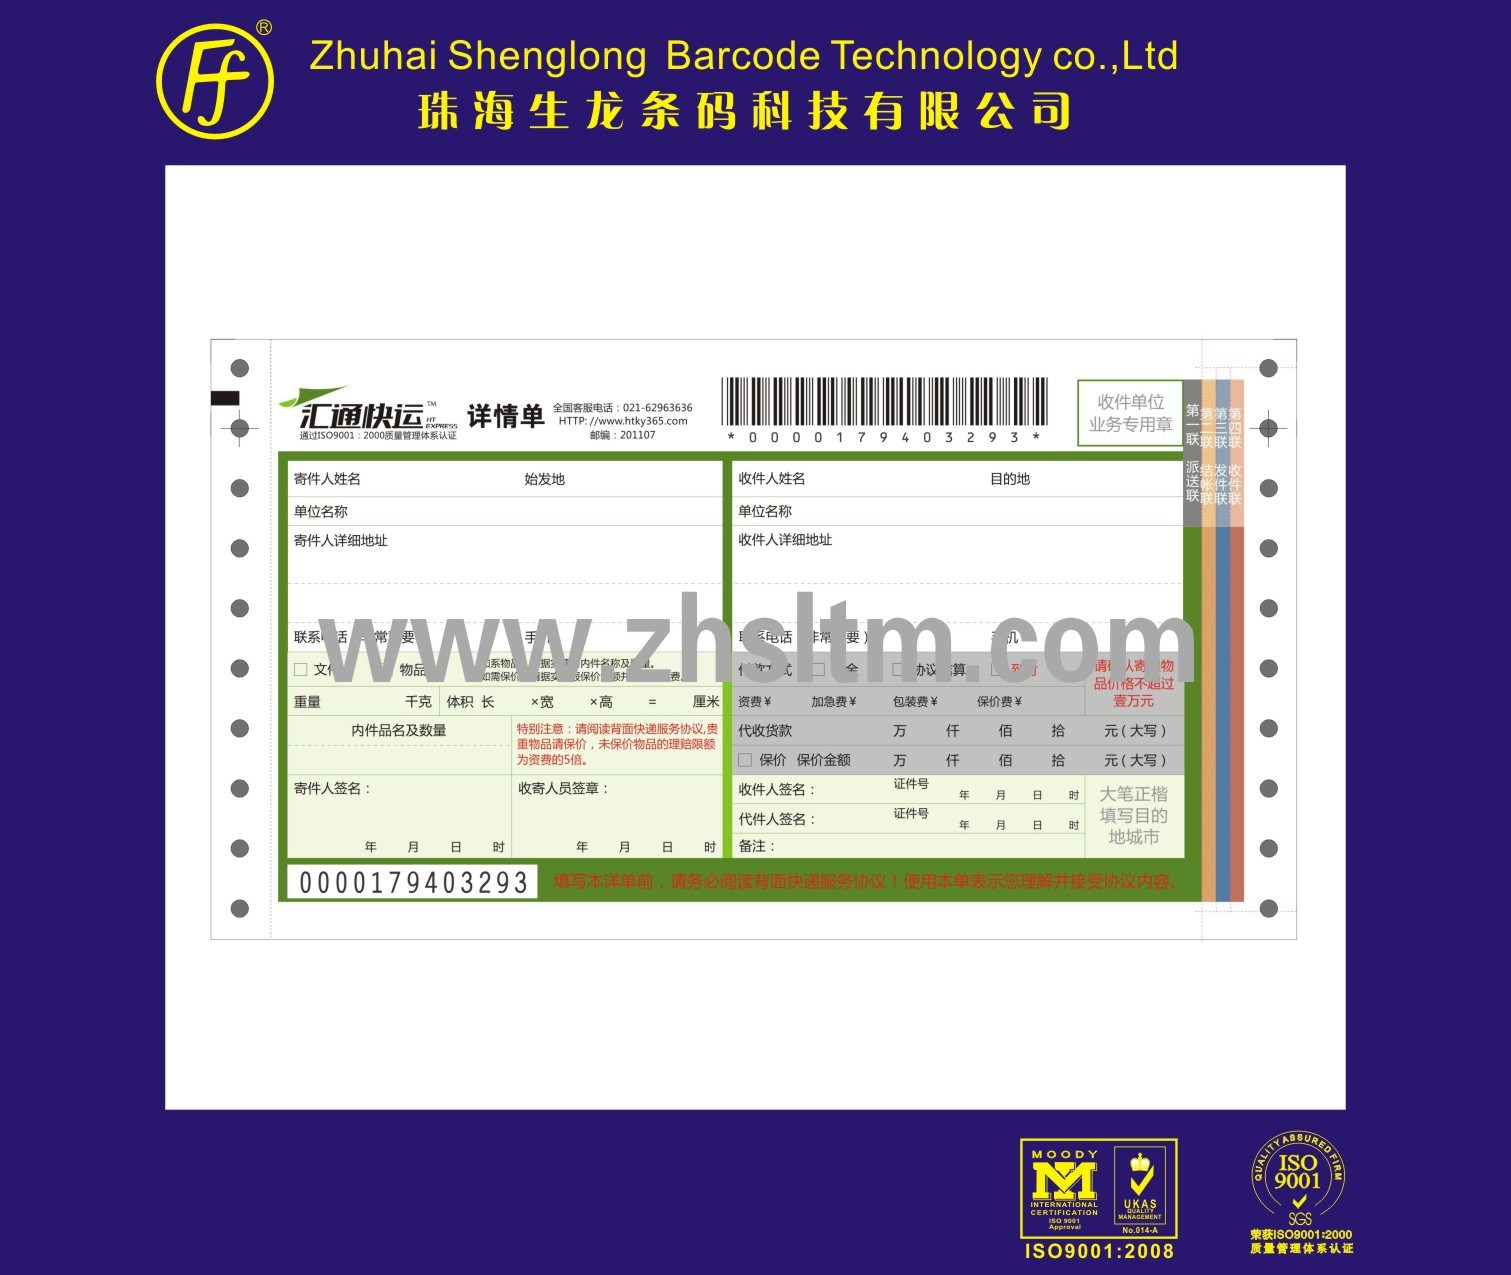 airway bill paper Custom dhl courier bill printing airway bill , find complete details about custom dhl courier bill printing airway bill,express waybill,waybill printing,dhl airway bill from paper & paperboard printing supplier or manufacturer.